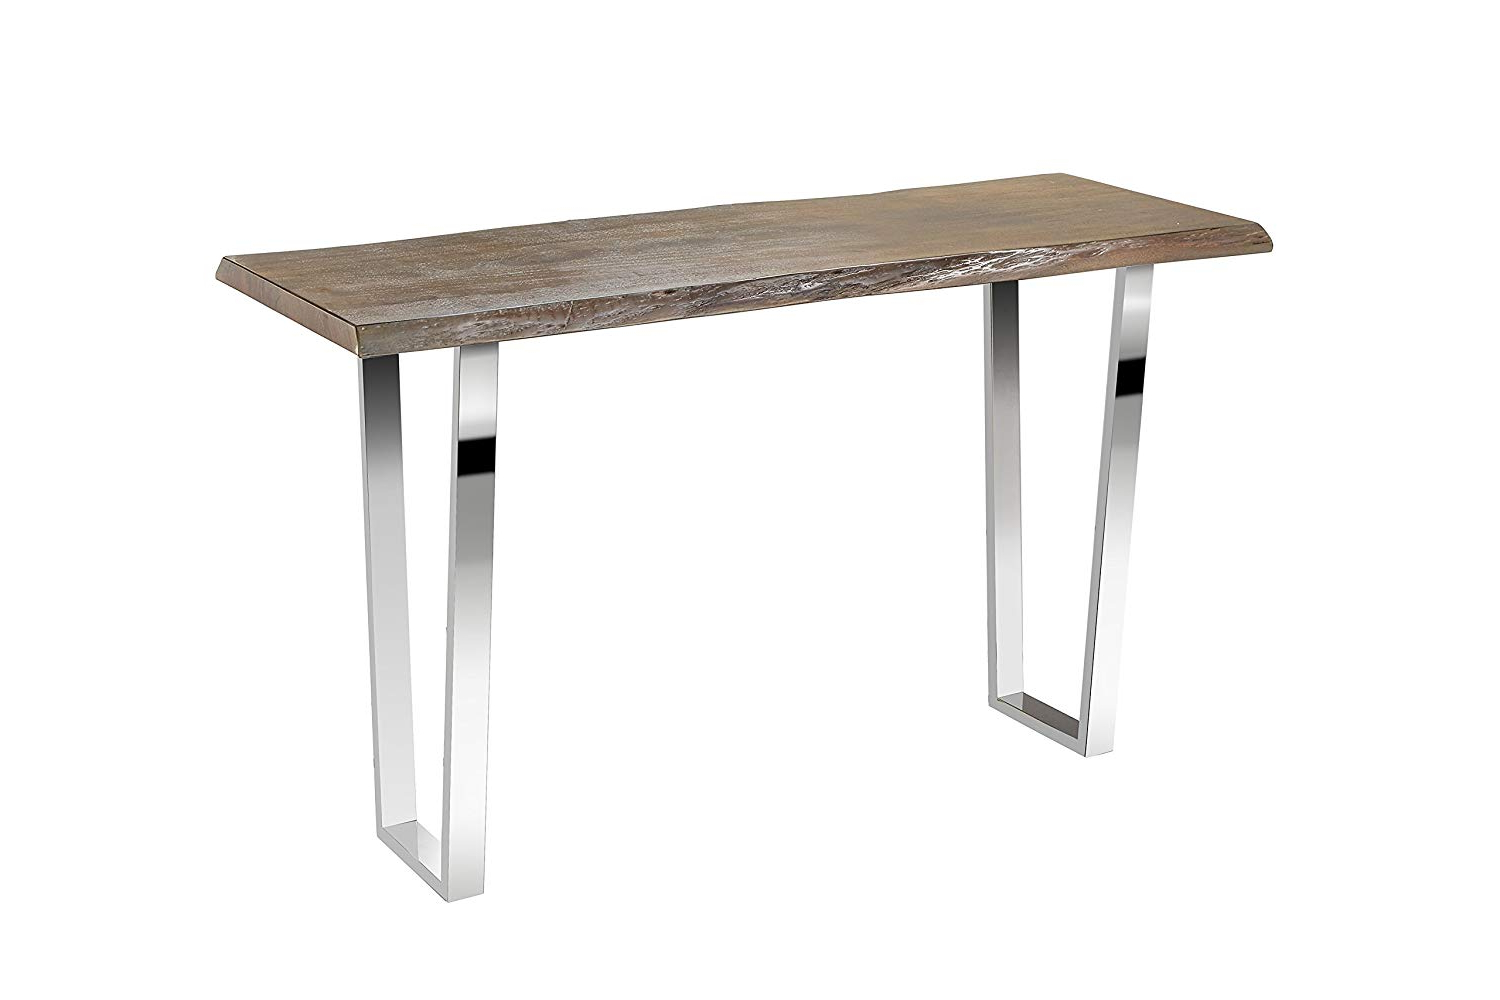 2020 Walnut Finish Live Edge Wood Contemporary Dining Tables With Amazon: Uptown Club Live Edge Collection Modern Console (View 23 of 25)